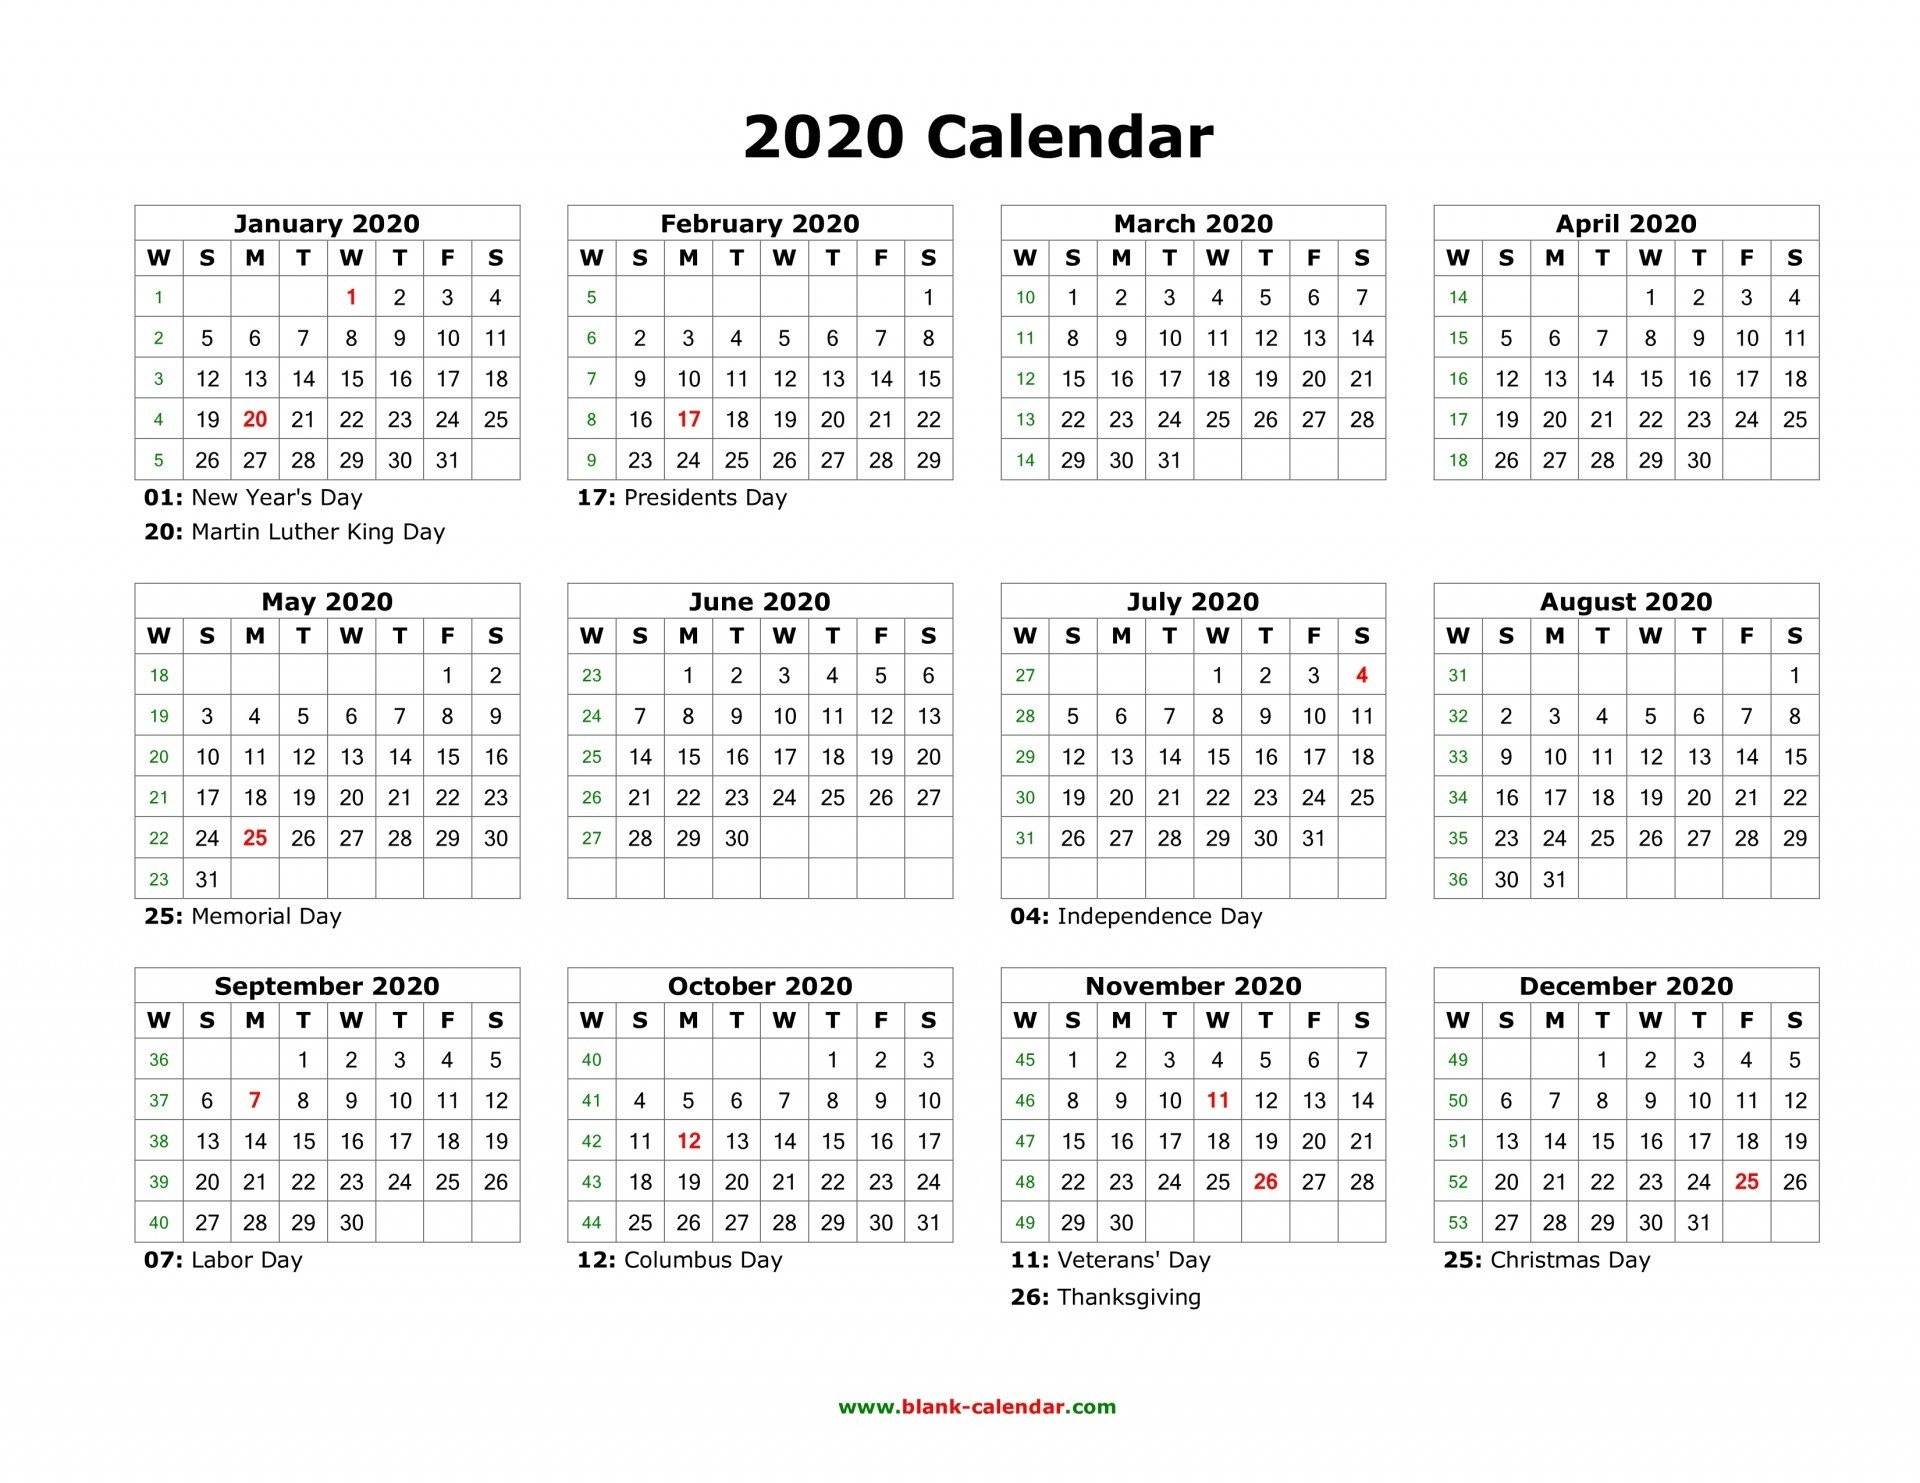 2020 Calendar Excel South Africa-2020 Calendar South Africa With Public Holidays